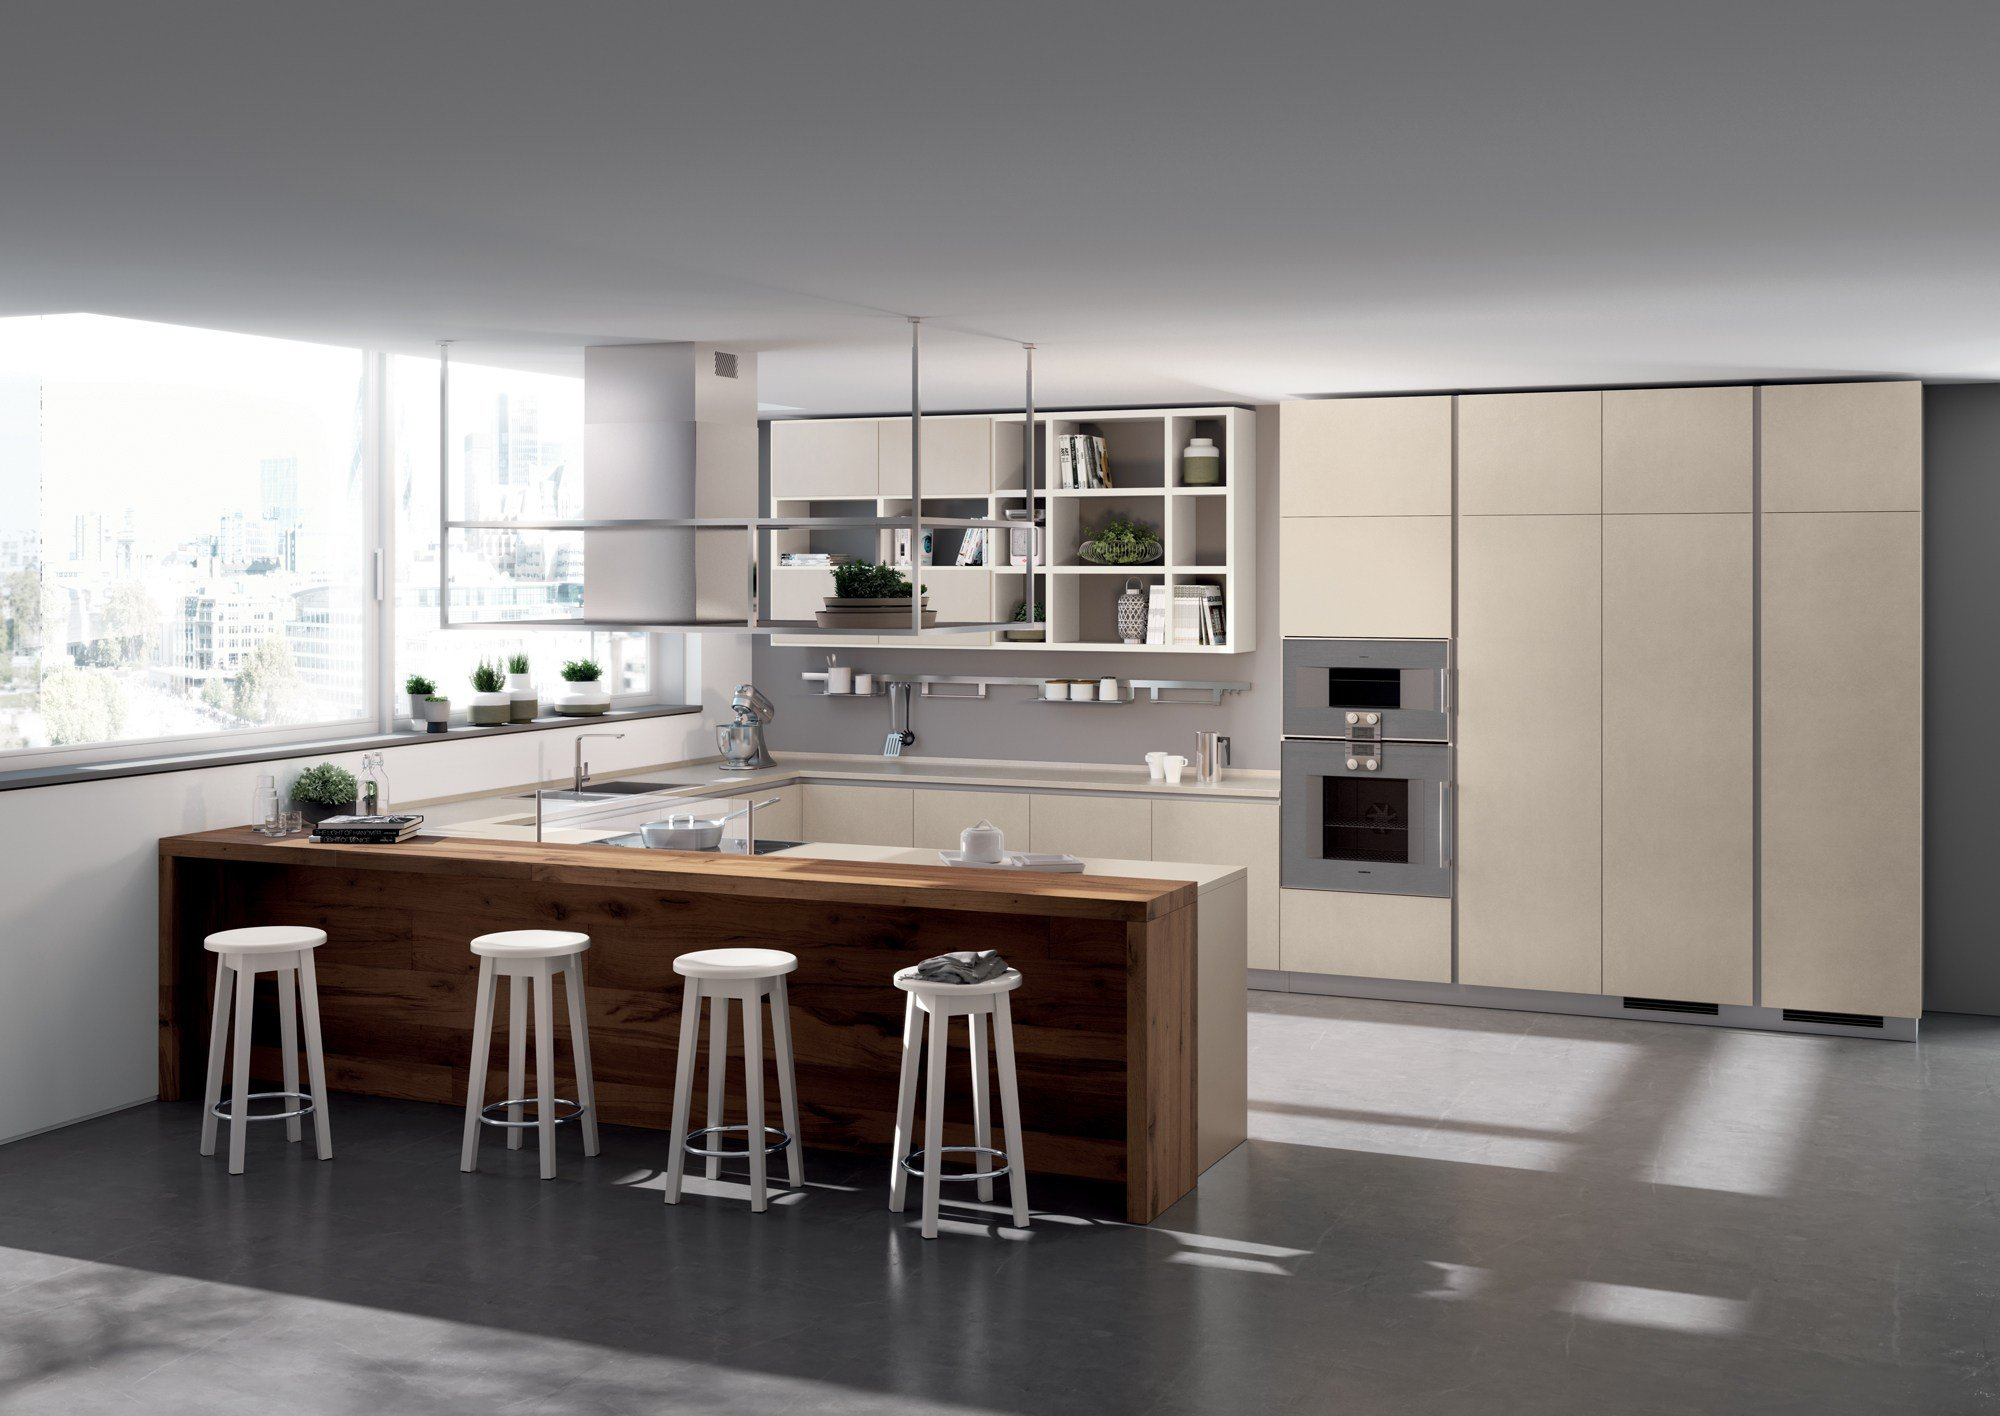 Outlet Cucine Lombardia. Elegant Cucine Outlet Lombardia Great ...